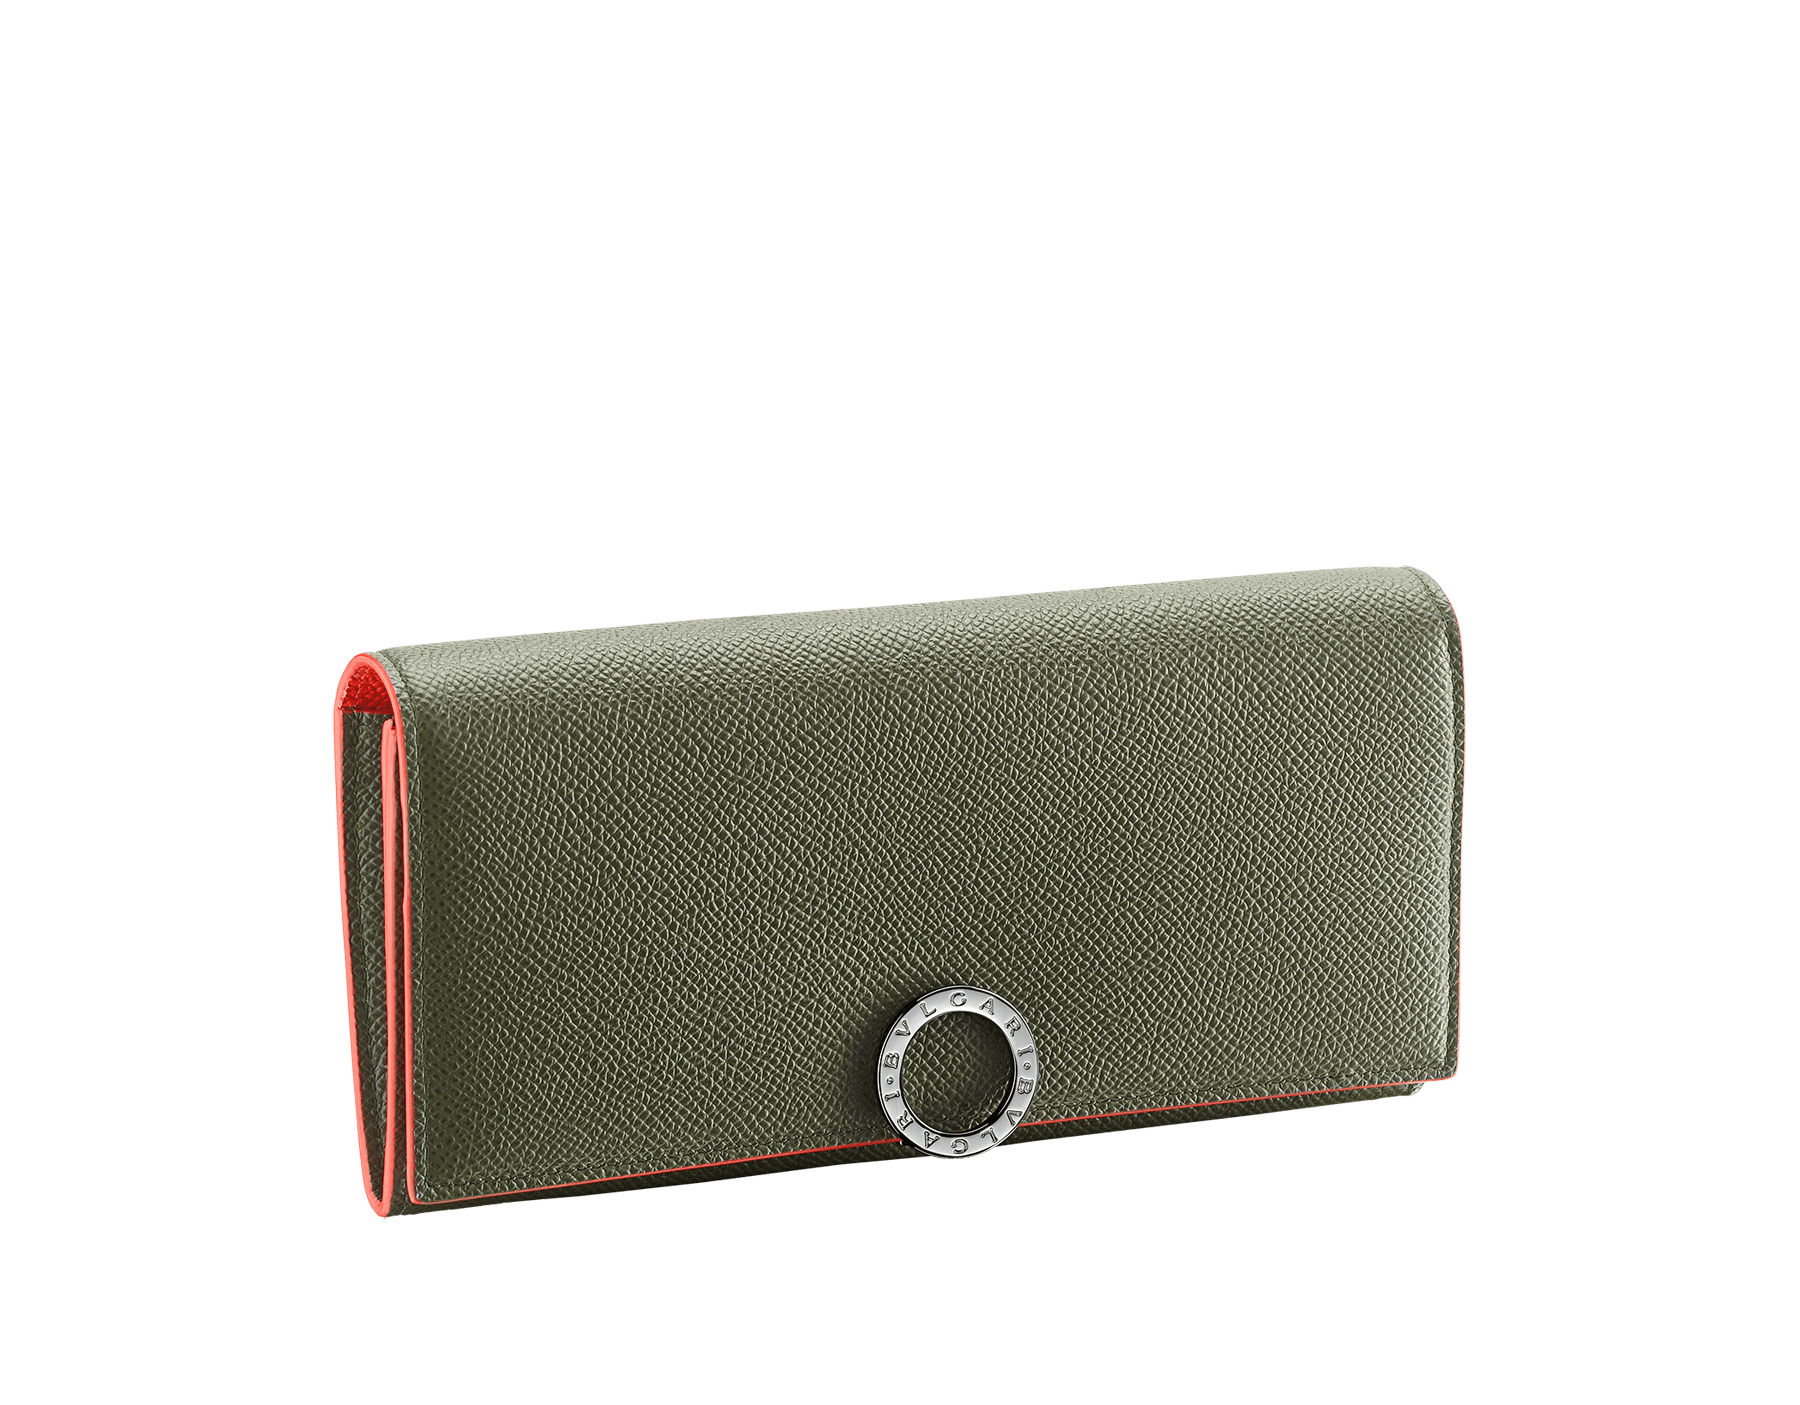 """BVLGARI BVLGARI"" large wallet in mimetic jade and fire amber grain calf leather. Iconic logo closure clip in ruthenium plated brass. BCM-WLT-SLI-POC-CL image 1"